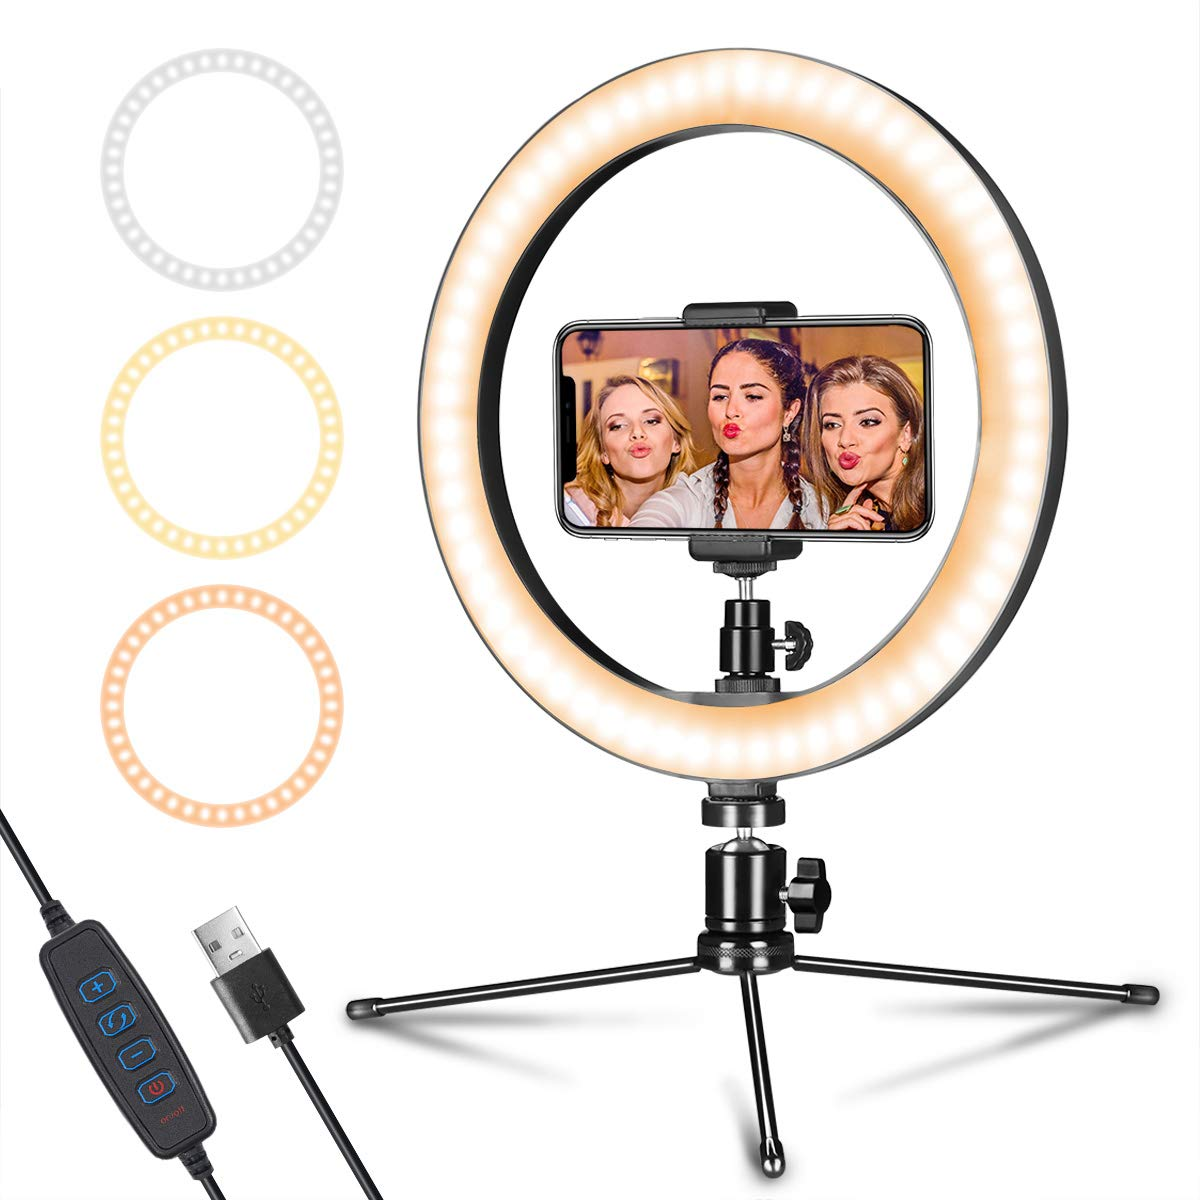 LED Ring Light 10'' with Tripod Stand & Phone Holder for Live Streaming & YouTube Video, Dimmable Desk Makeup Ring Light for Photography, Shooting with 3 Light Modes & 10 Brightness Level by AIXPI